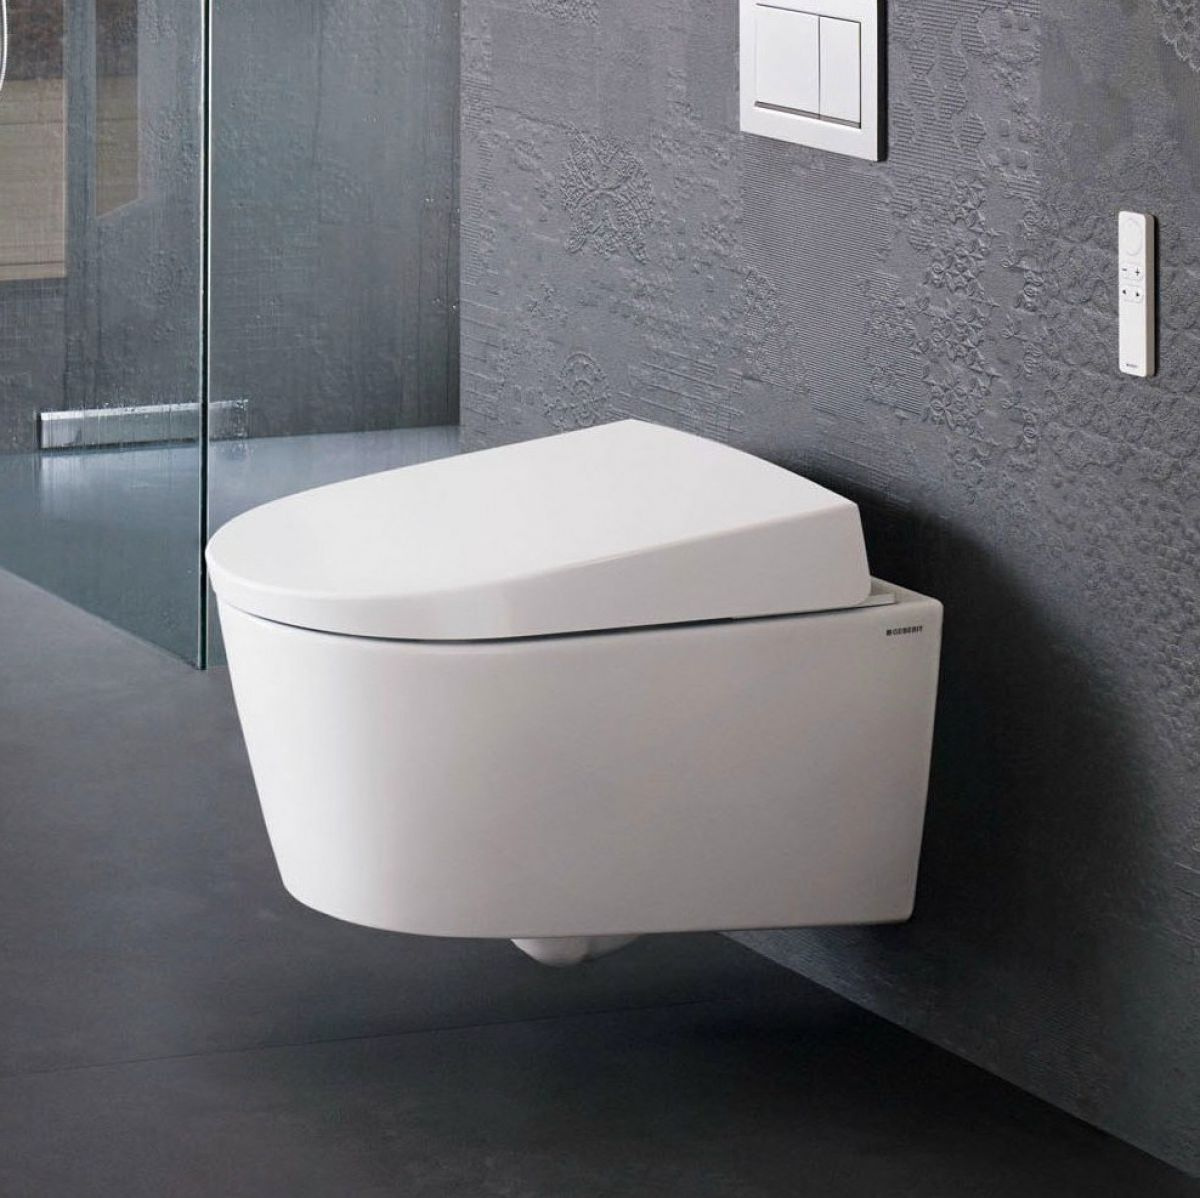 Geberit aquaclean sela shower toilet uk bathrooms for Geberit technical support